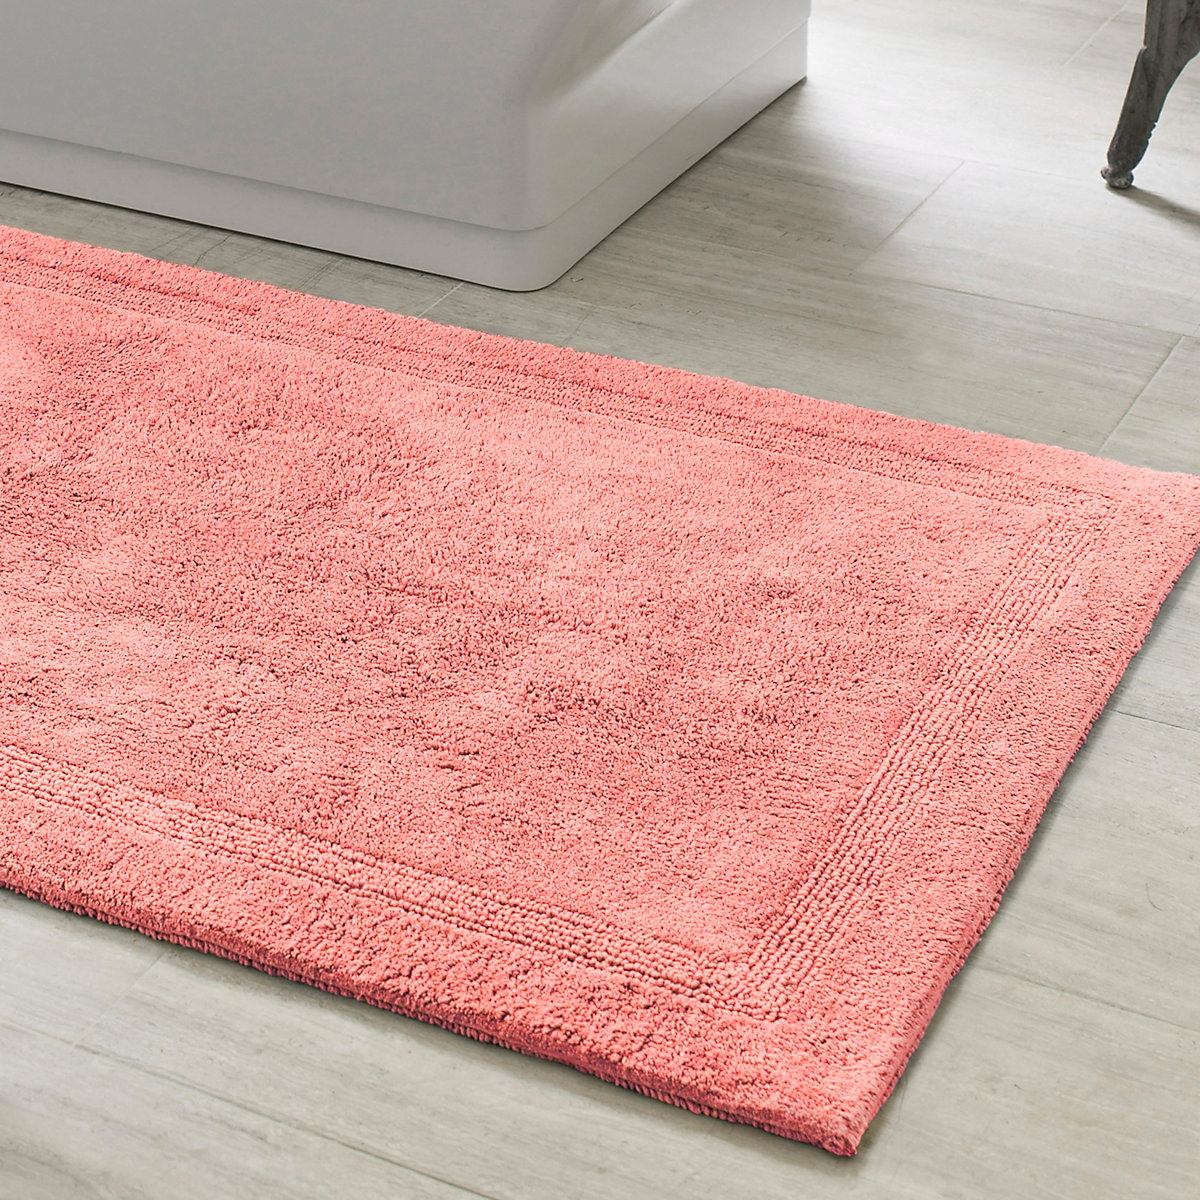 Coral Pink Bath Rugssignature coral bath rug rugs towels and band